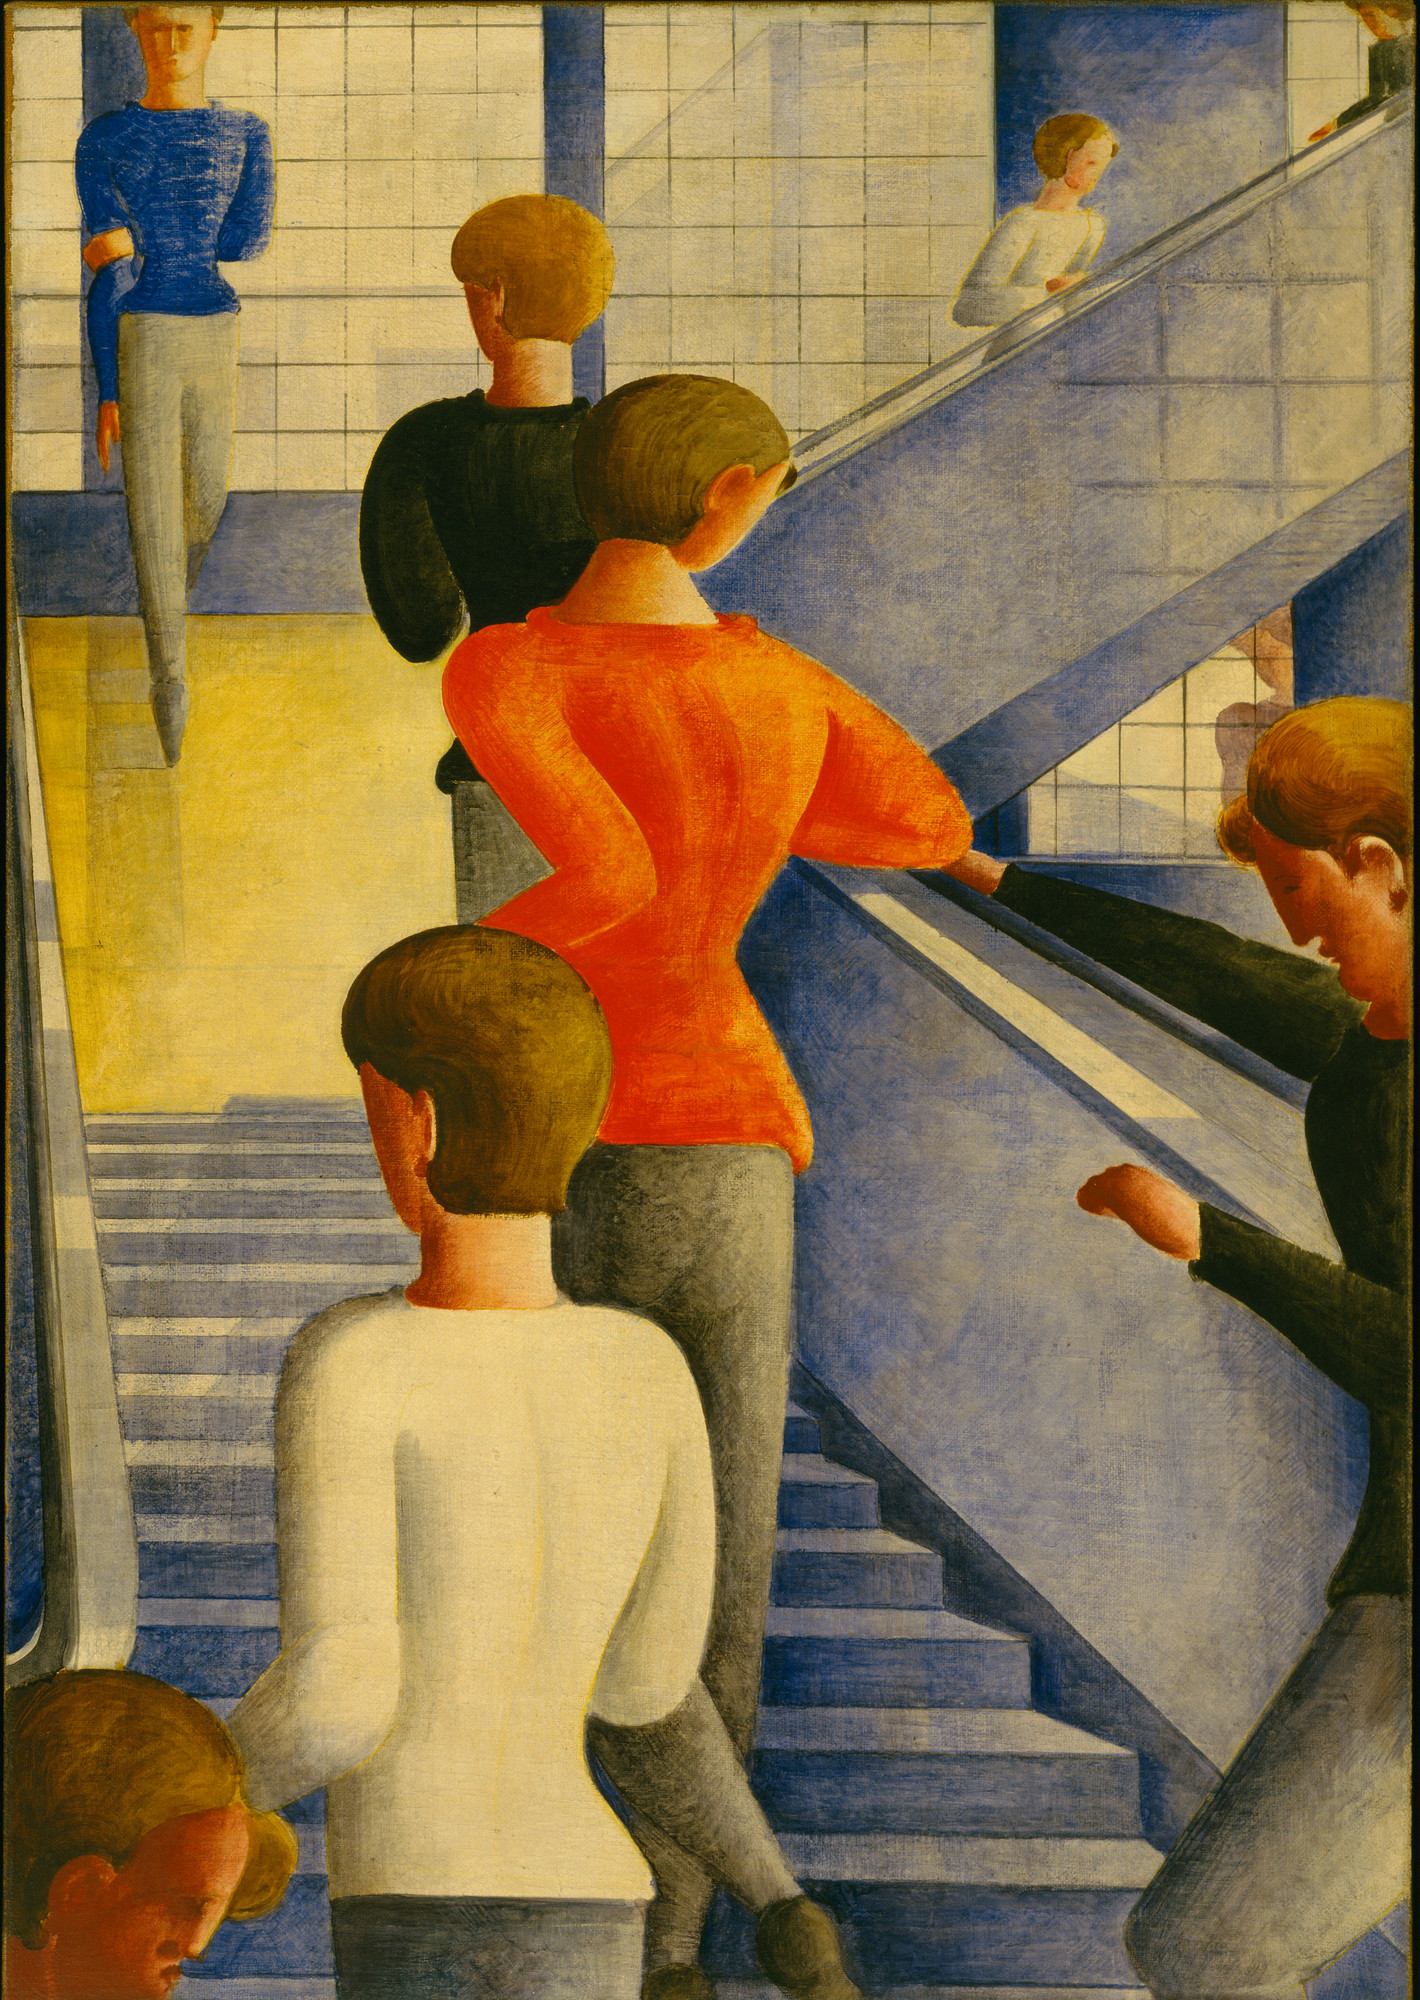 Oskar Schlemmer. Bauhaus Stairway. 1932. Oil on canvas. 63 7⁄8 × 45″ (162.3 × 114.3 cm). The Museum of Modern Art, New York. Gift of Philip Johnson. © 2009 Estate of Oskar Schlemmer, Munich/Germany